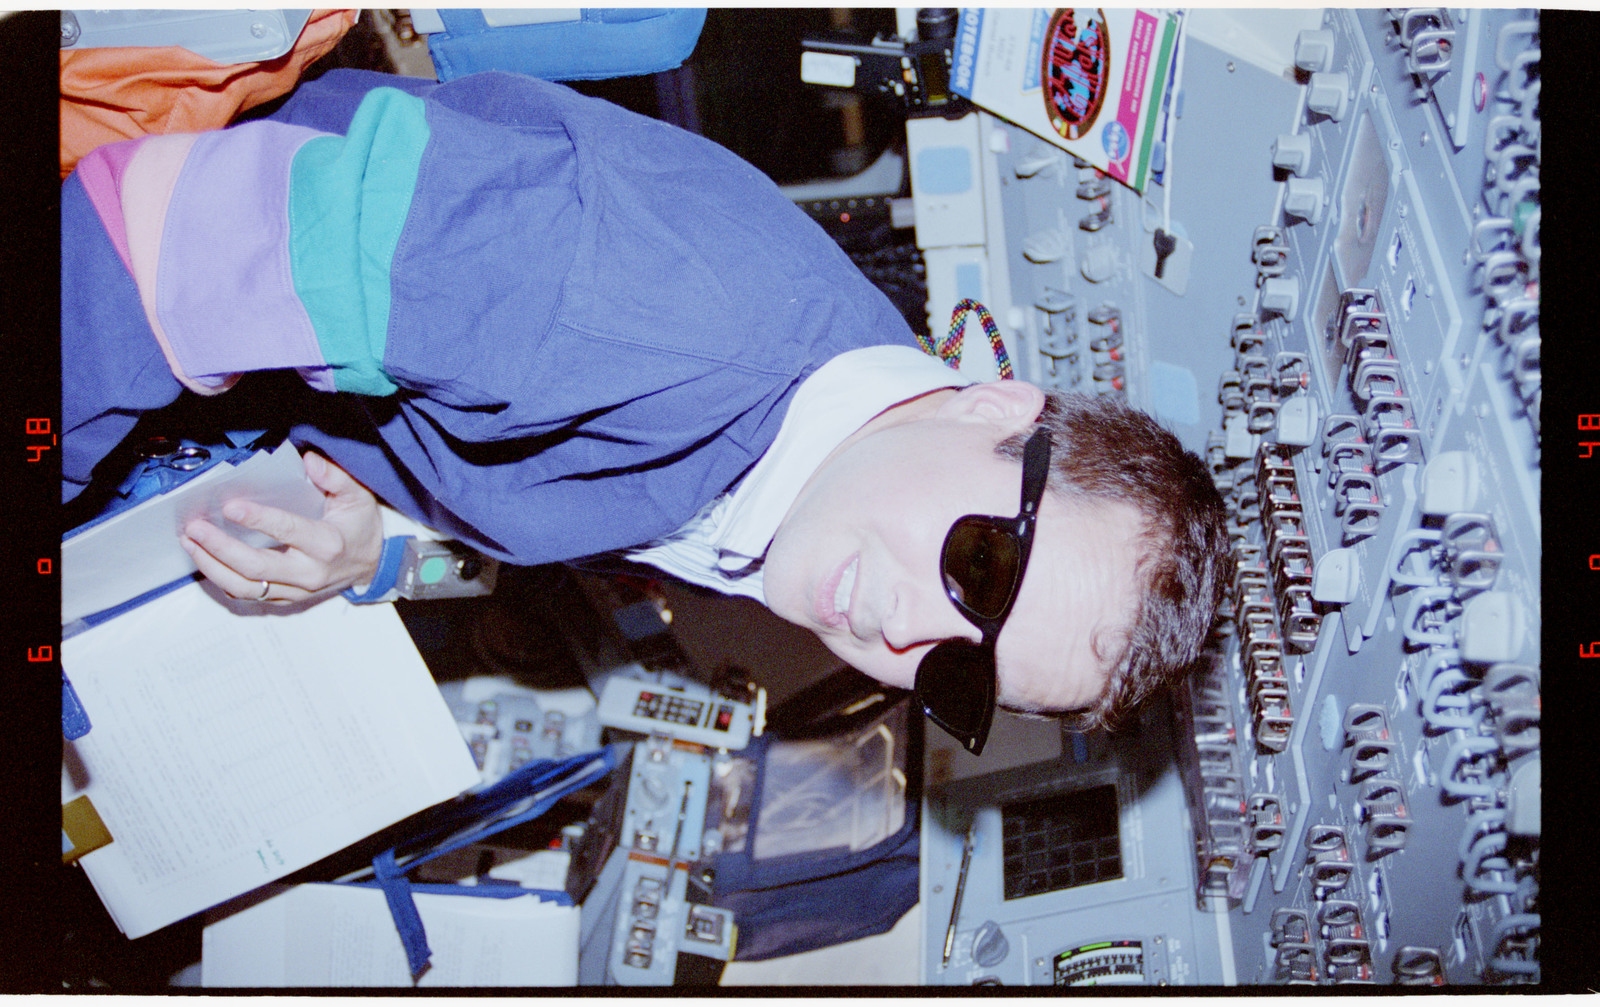 STS068-41-012 - STS-068 - STS-68 crew on orbiter flight deck